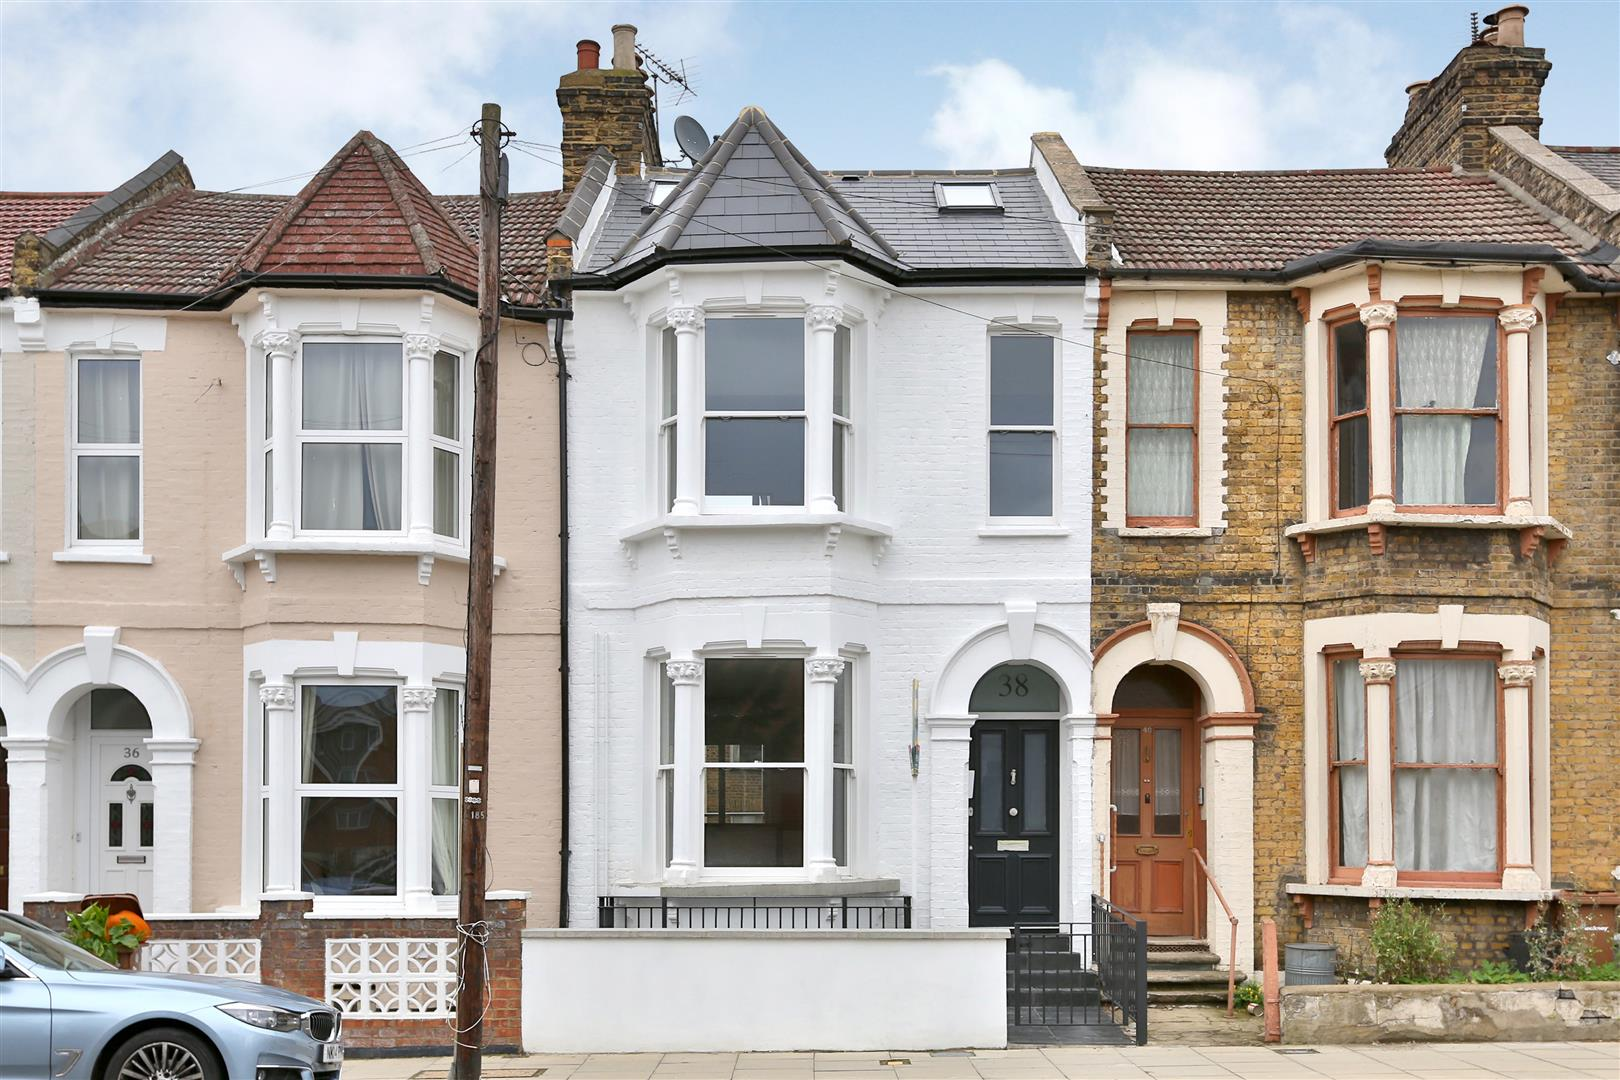 3 Bedrooms Flat for sale in Pellerin Road, London